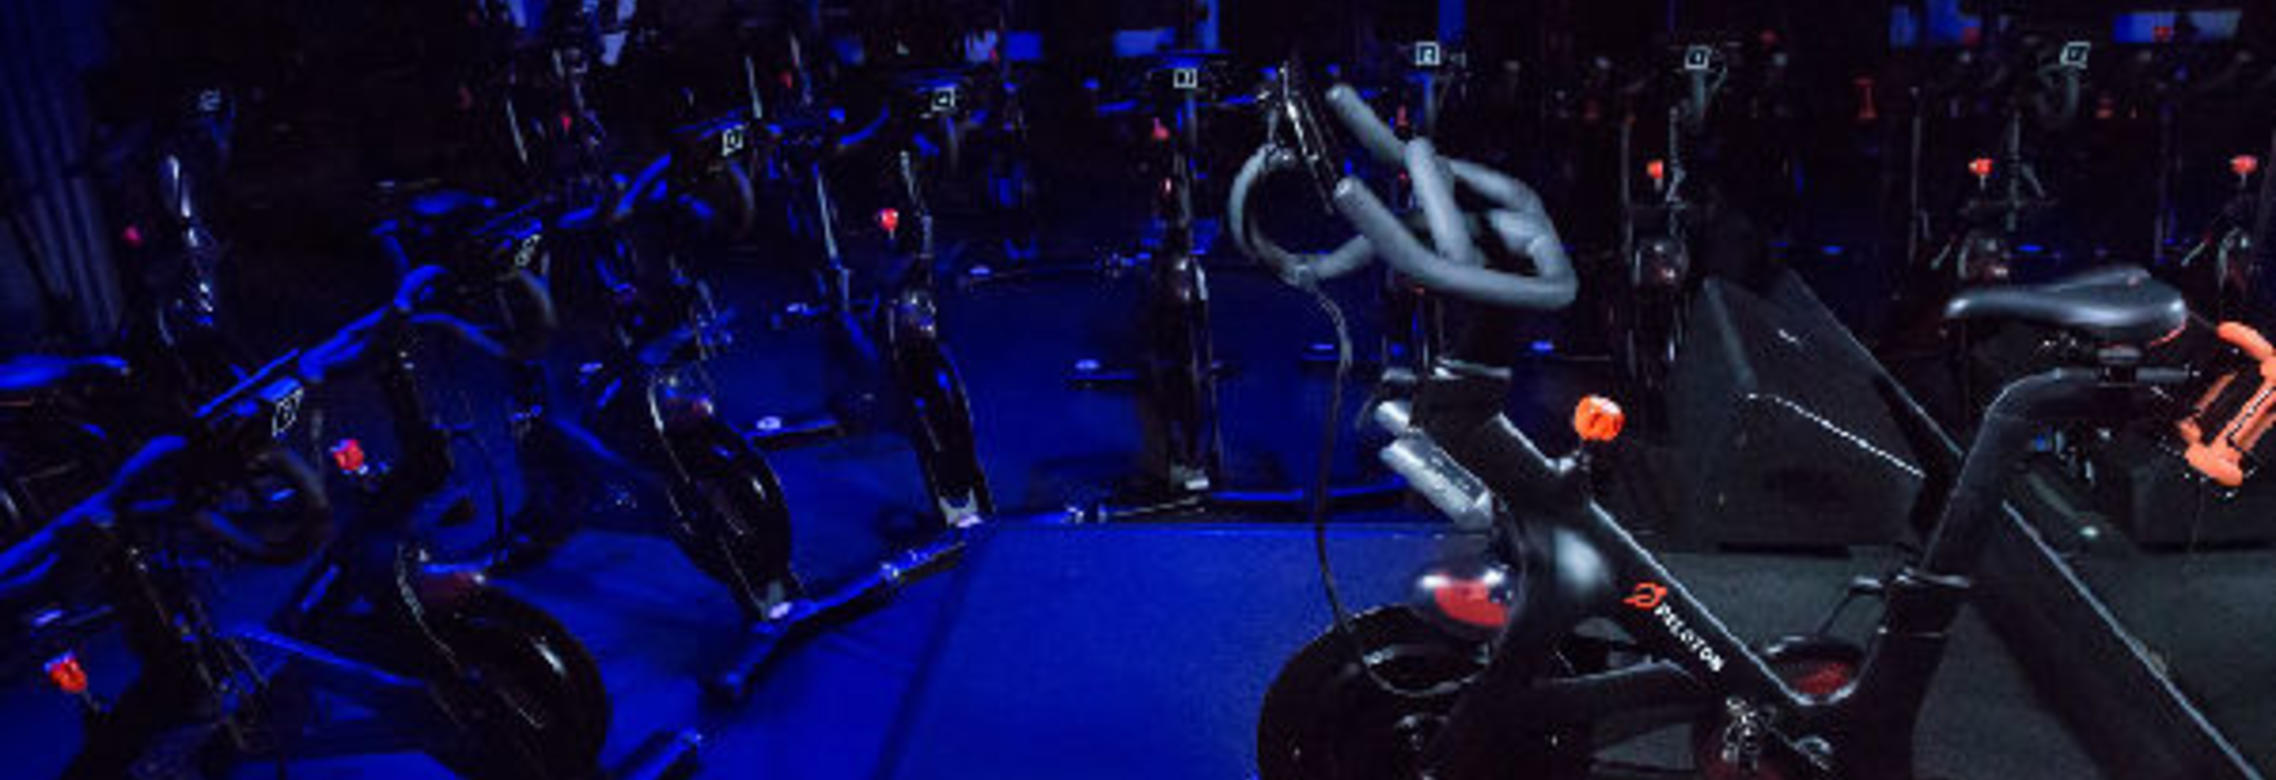 peloton digital fitness class studio online streaming workout class on demand gym soul cycle2